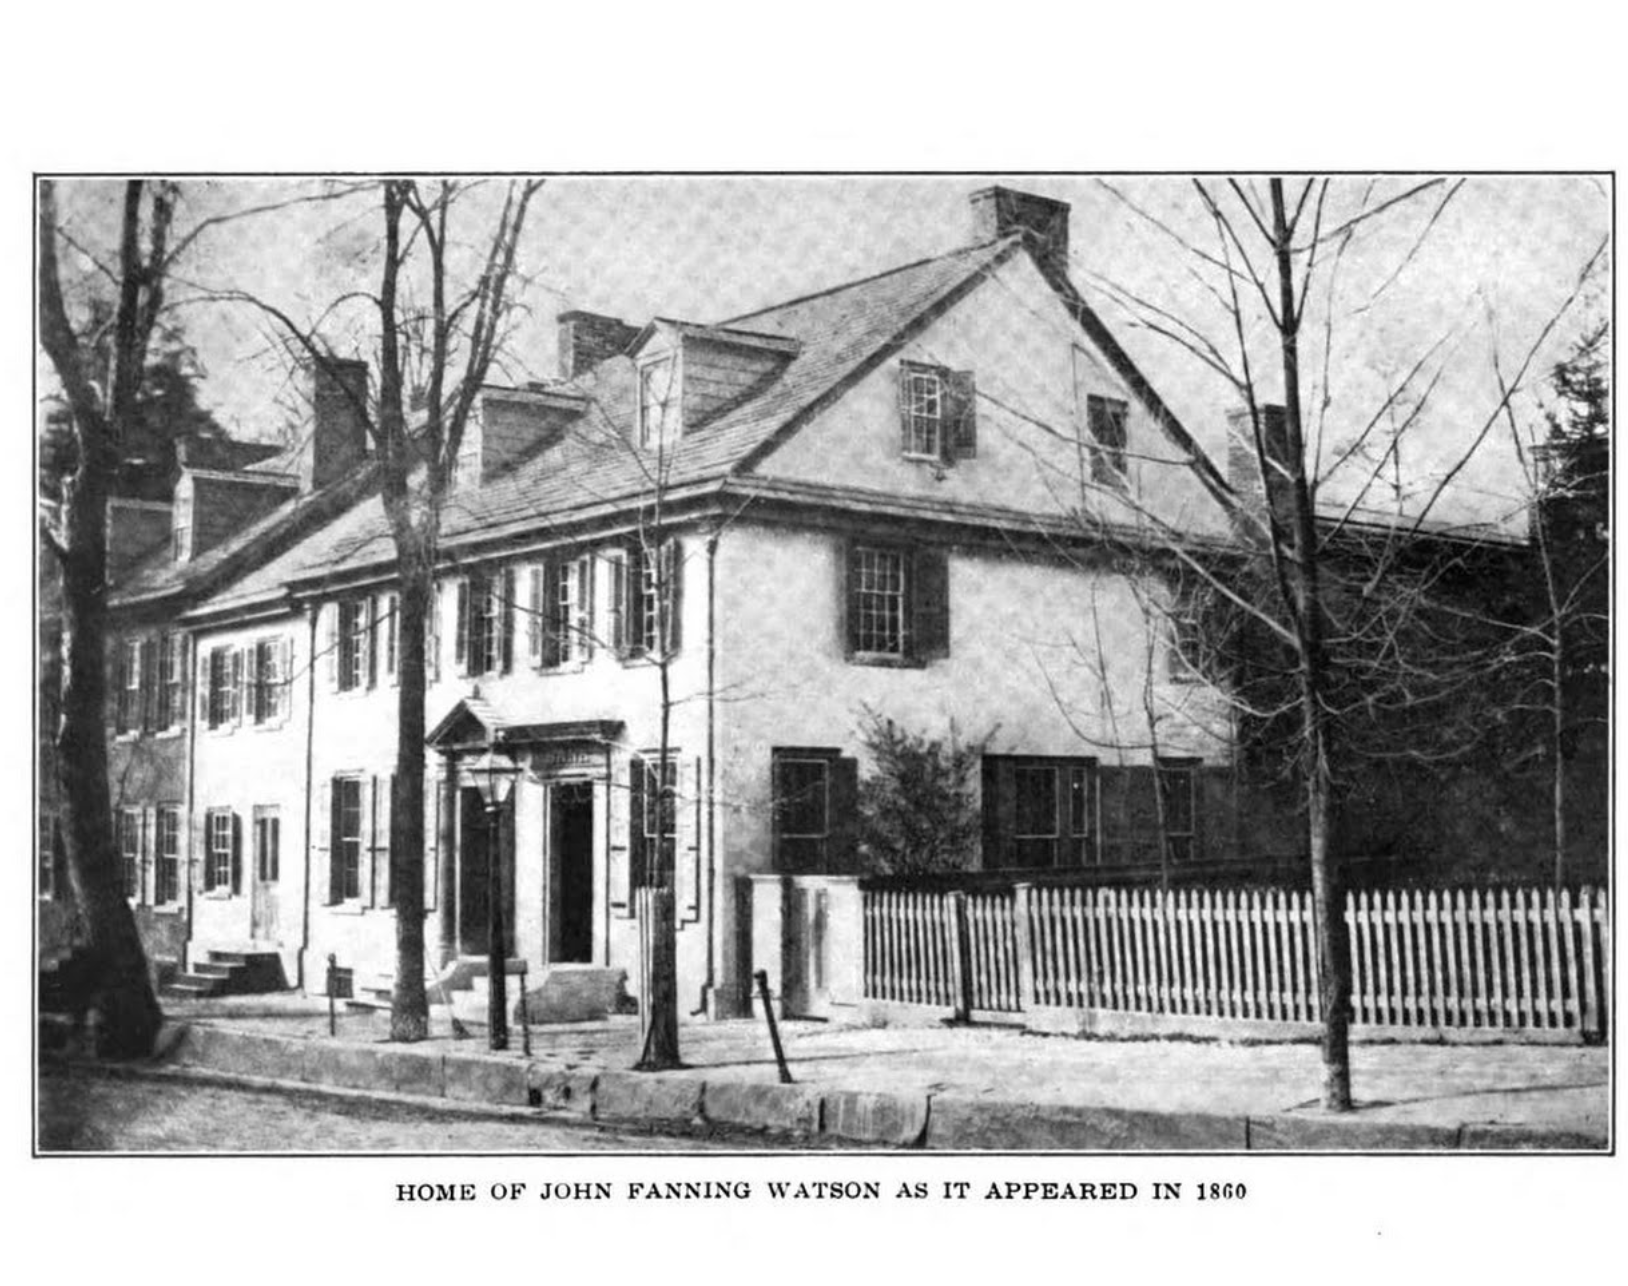 Photograph of the Clarkson-Watson House in 1860, sourced from History of Old Germantown, citation above, public domain history volume